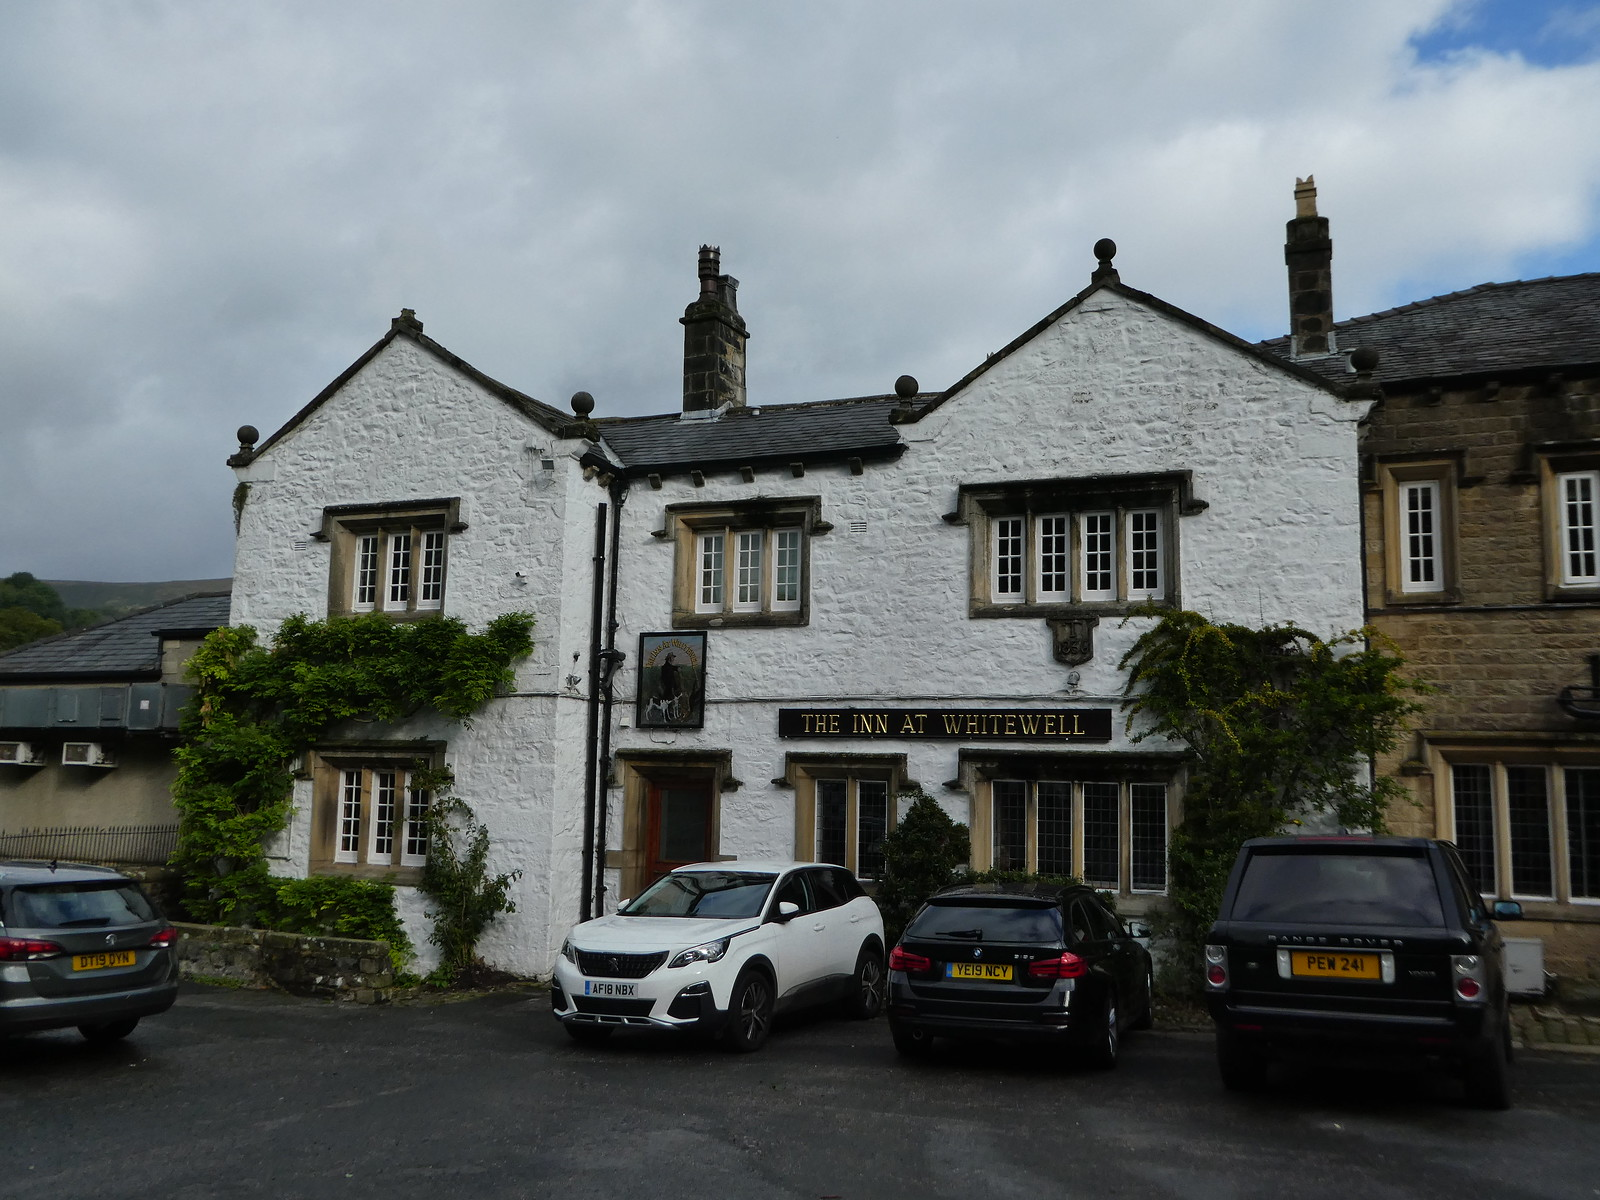 The Inn at Whitewell, near Clitheroe